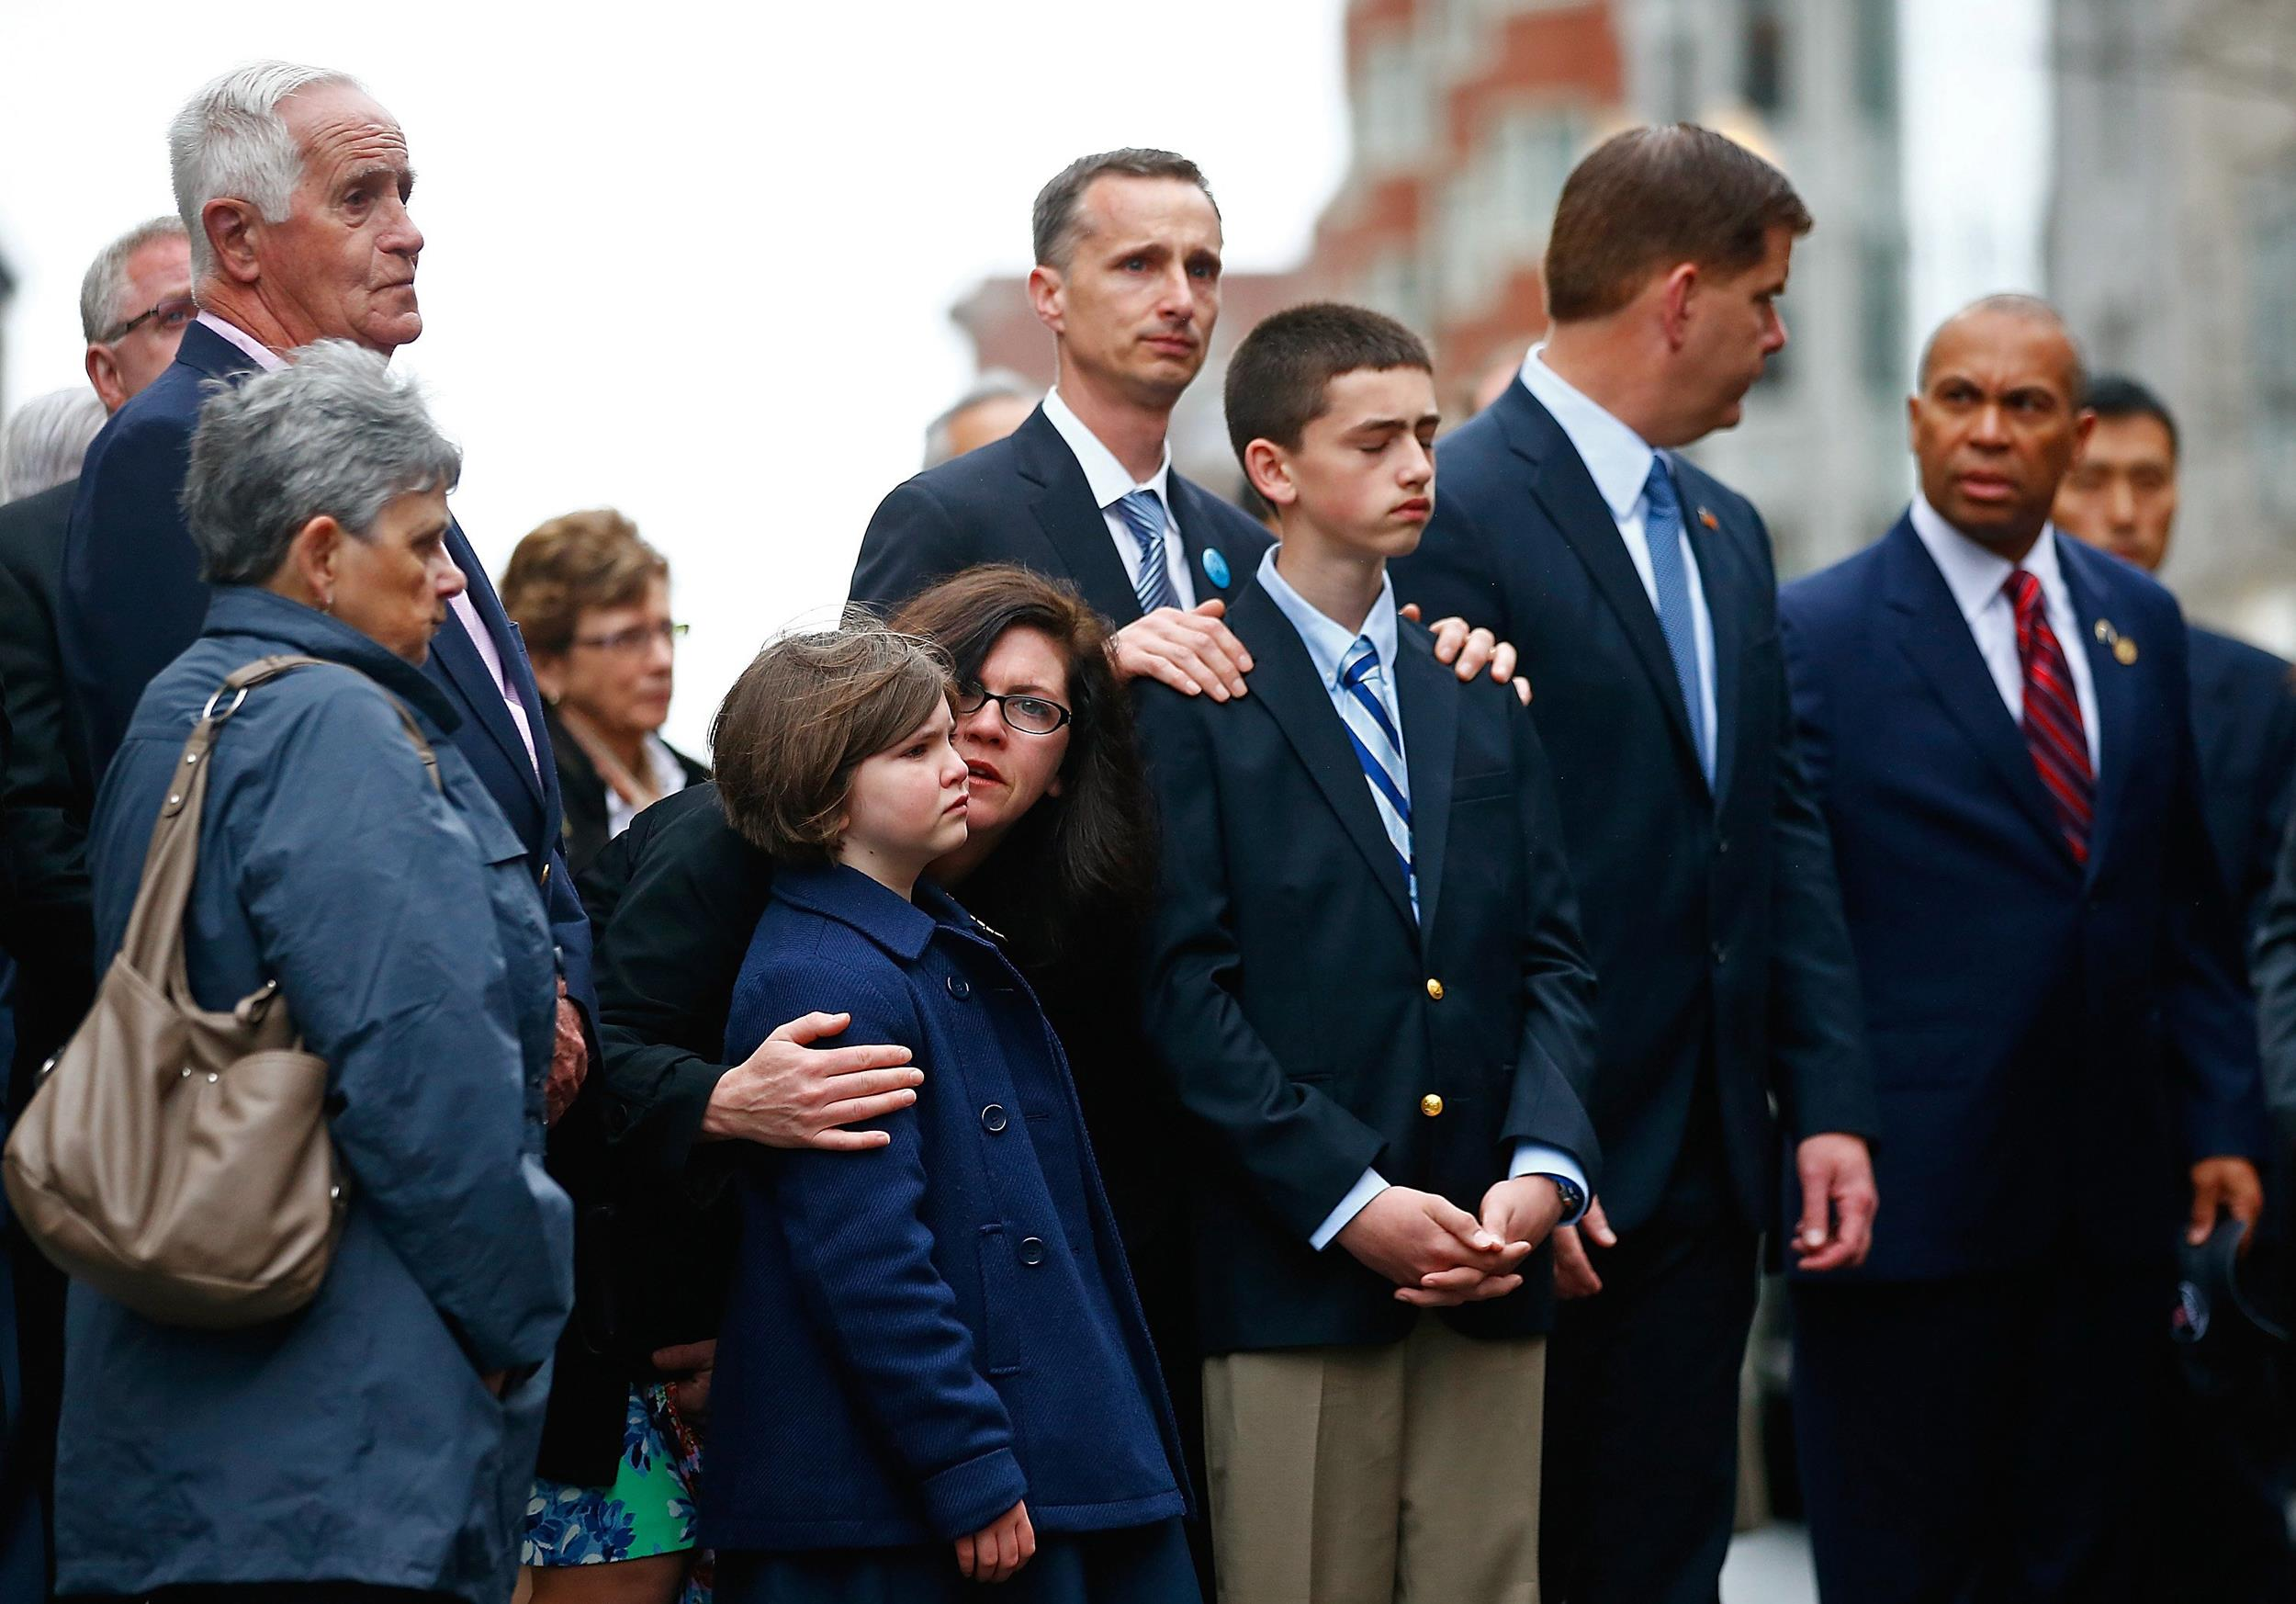 Image: Boston Commemorates One-Year Anniversary Of Marathon Terror Bombings